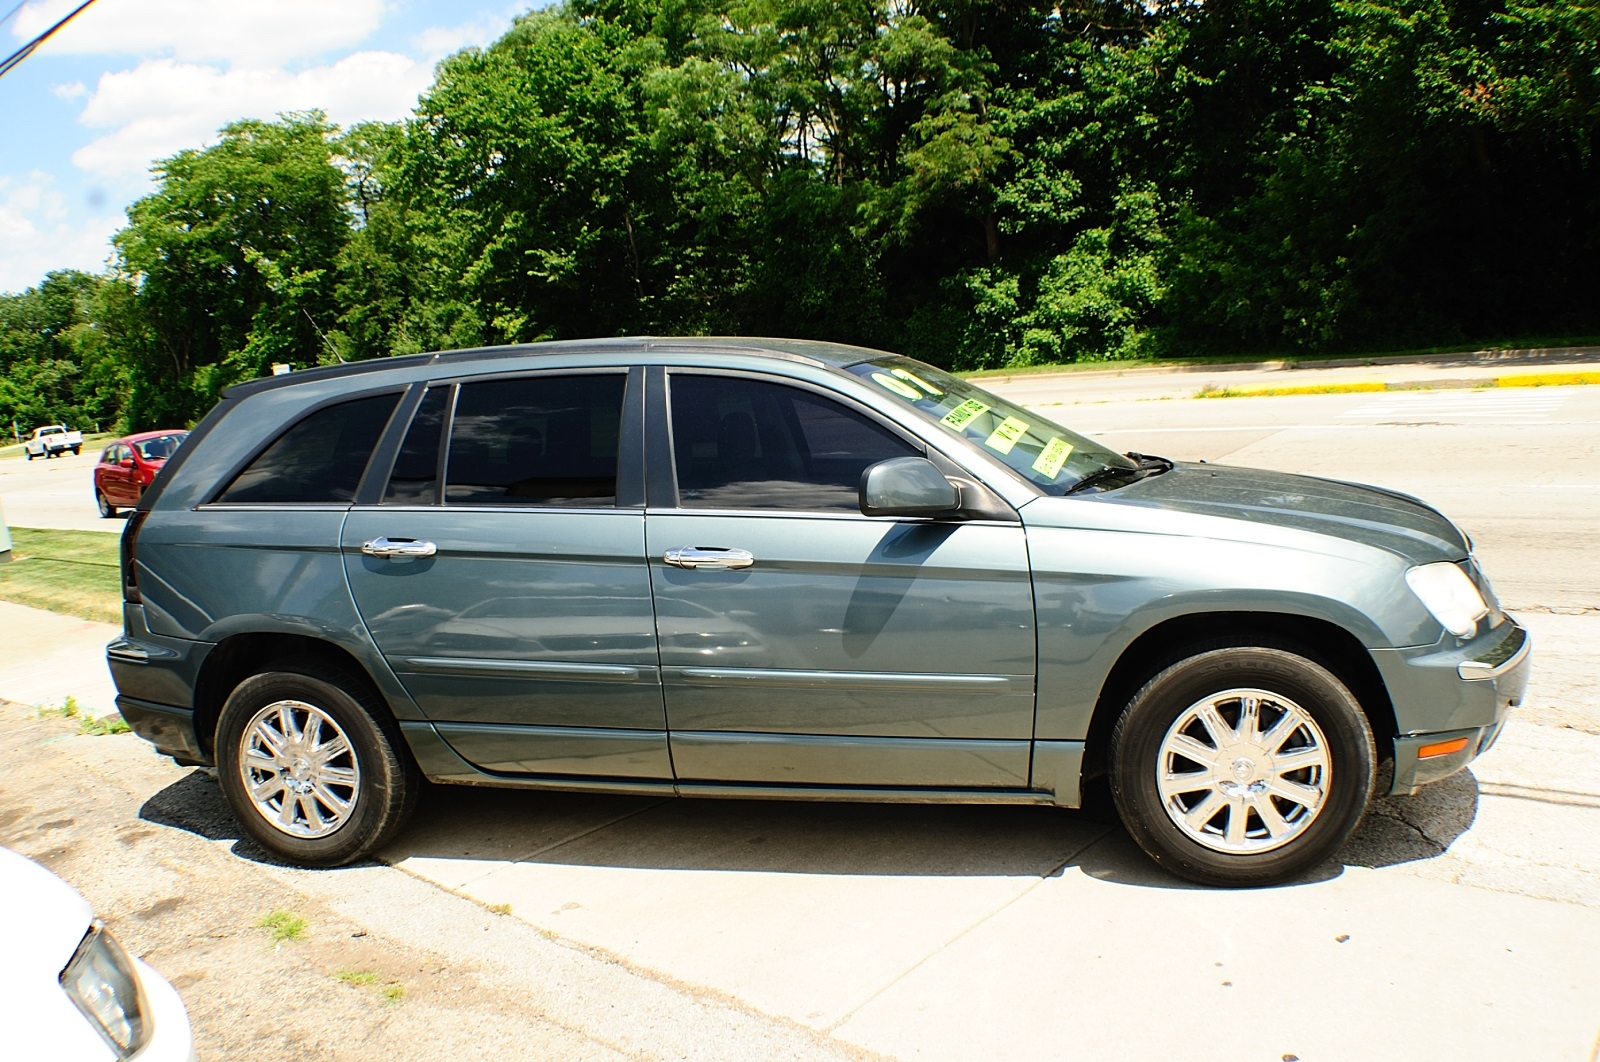 2007 Chrysler Pacifica Magnesium Pearl Used car sale Downers Grove Carpentersville Cicero